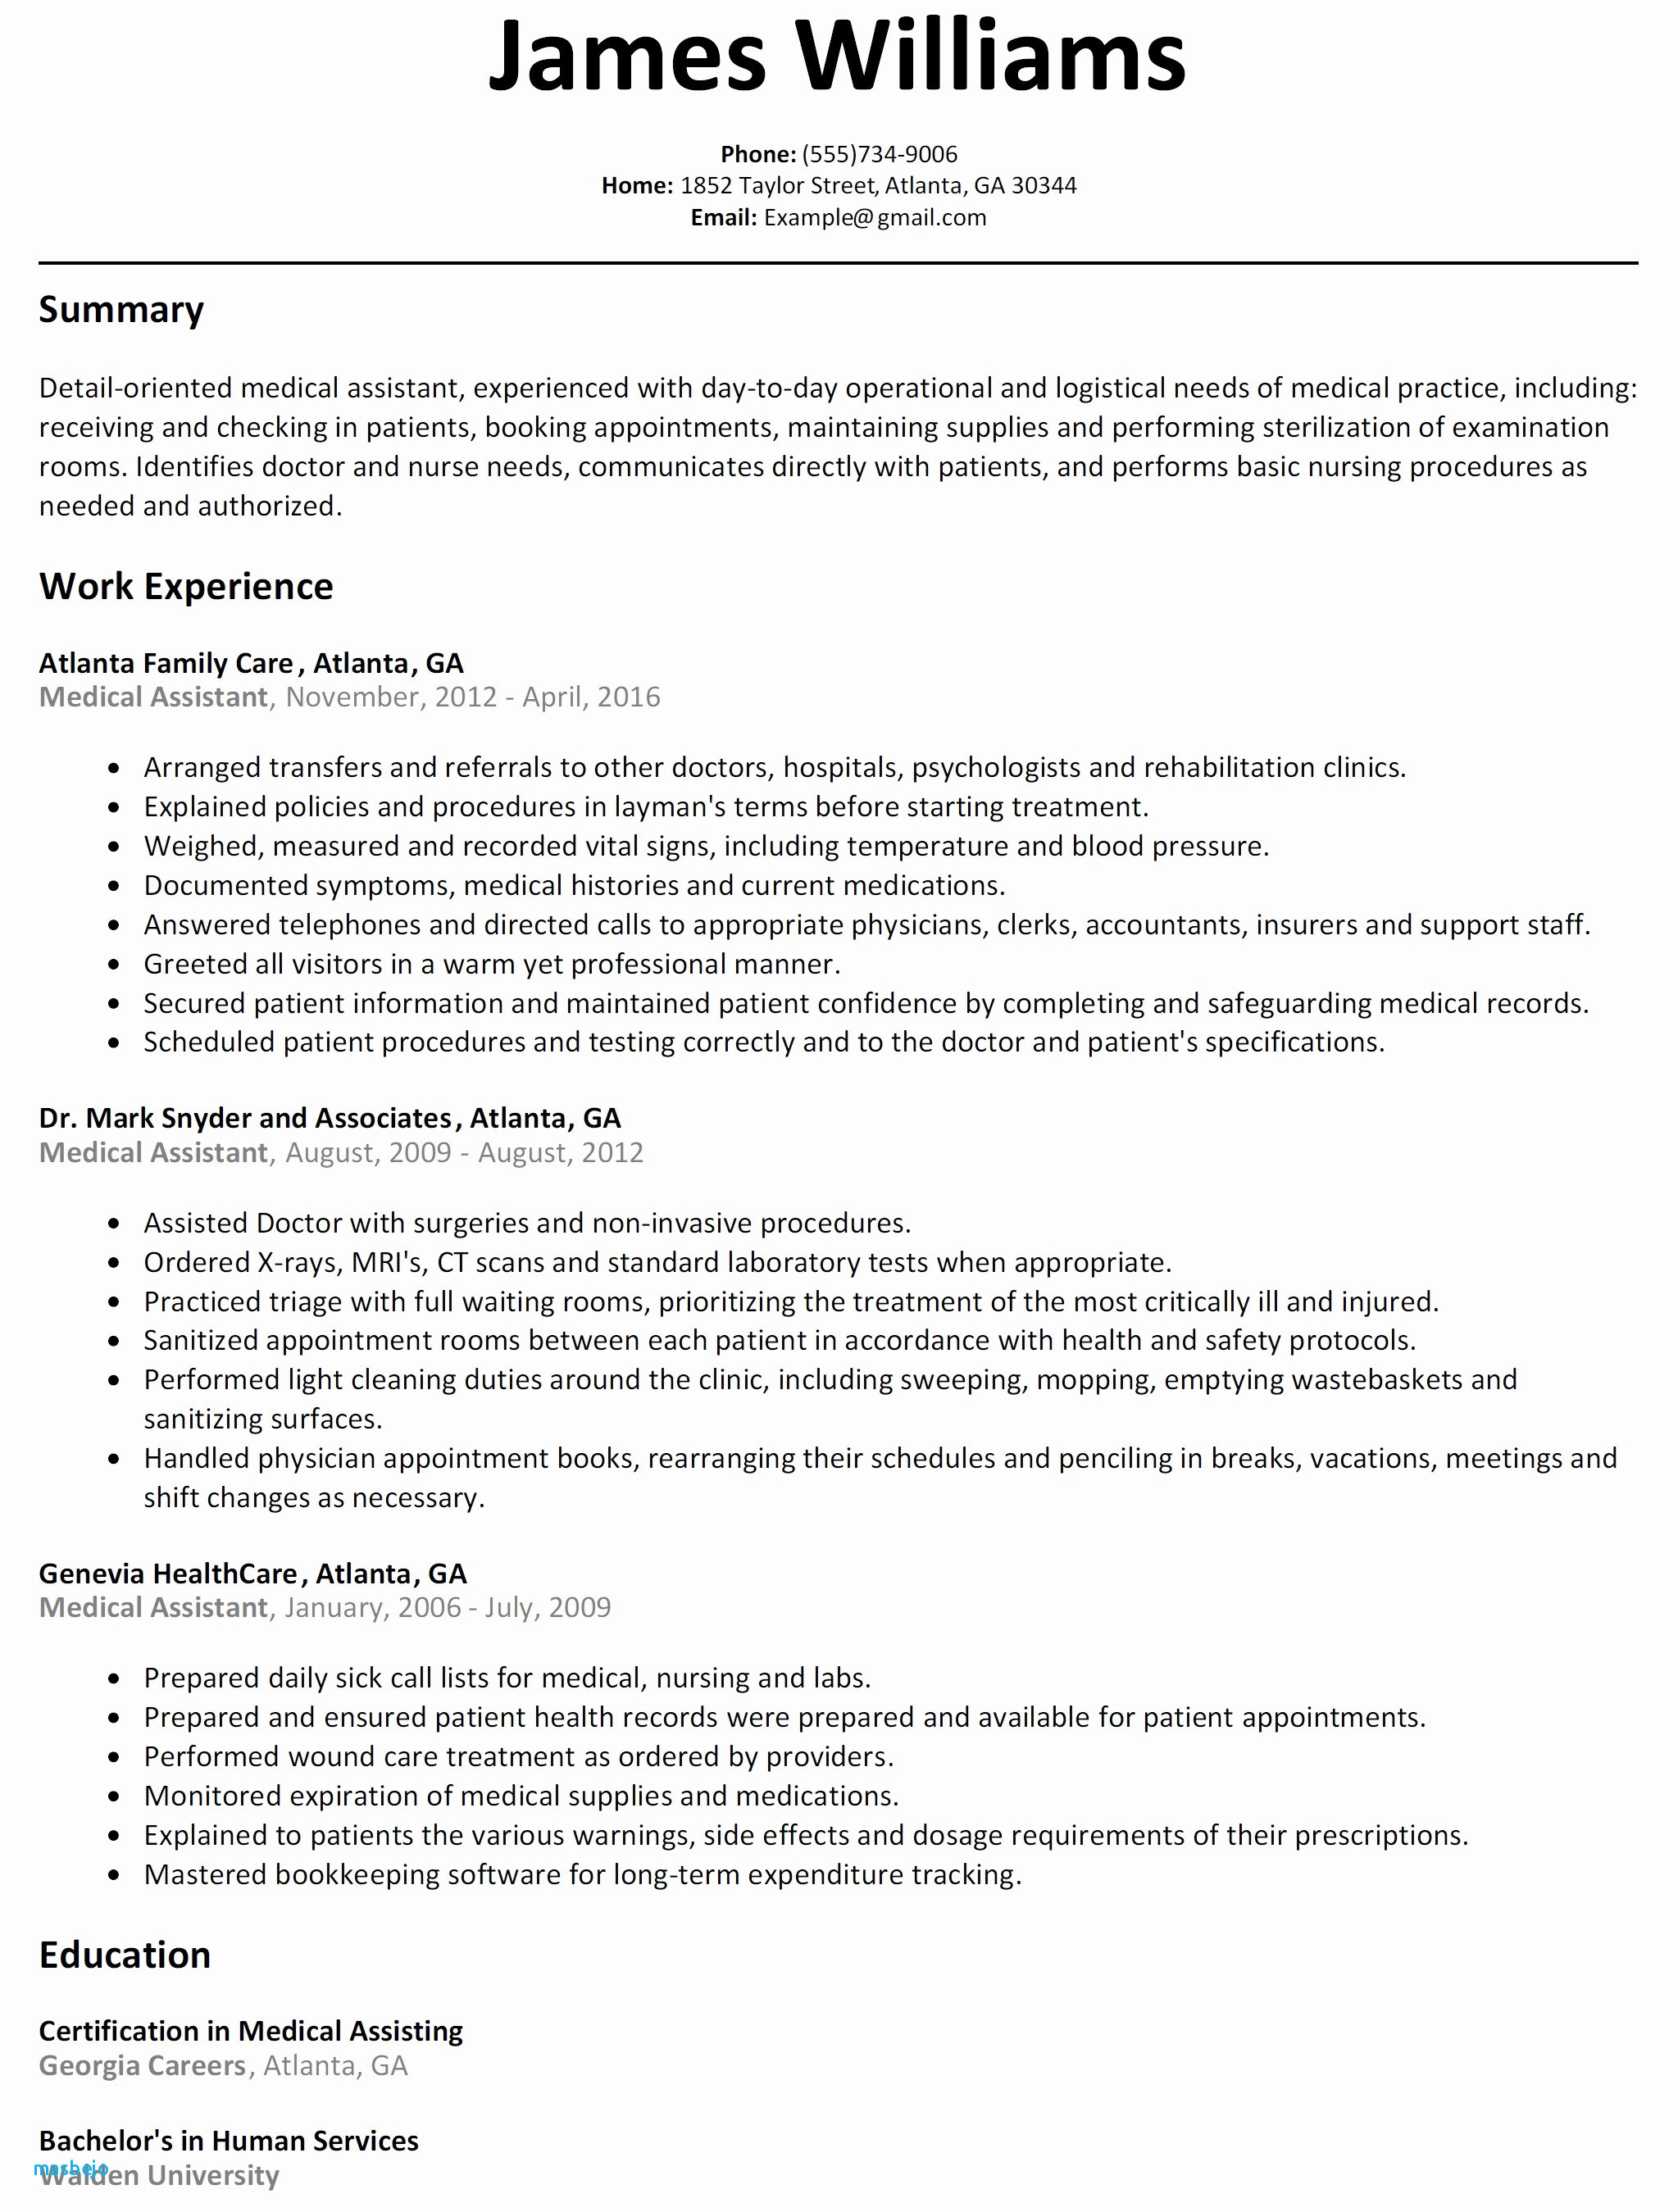 Rn Resume Examples - Experienced Nurse Resume Examples Resume for Nurse Elegant New Nurse